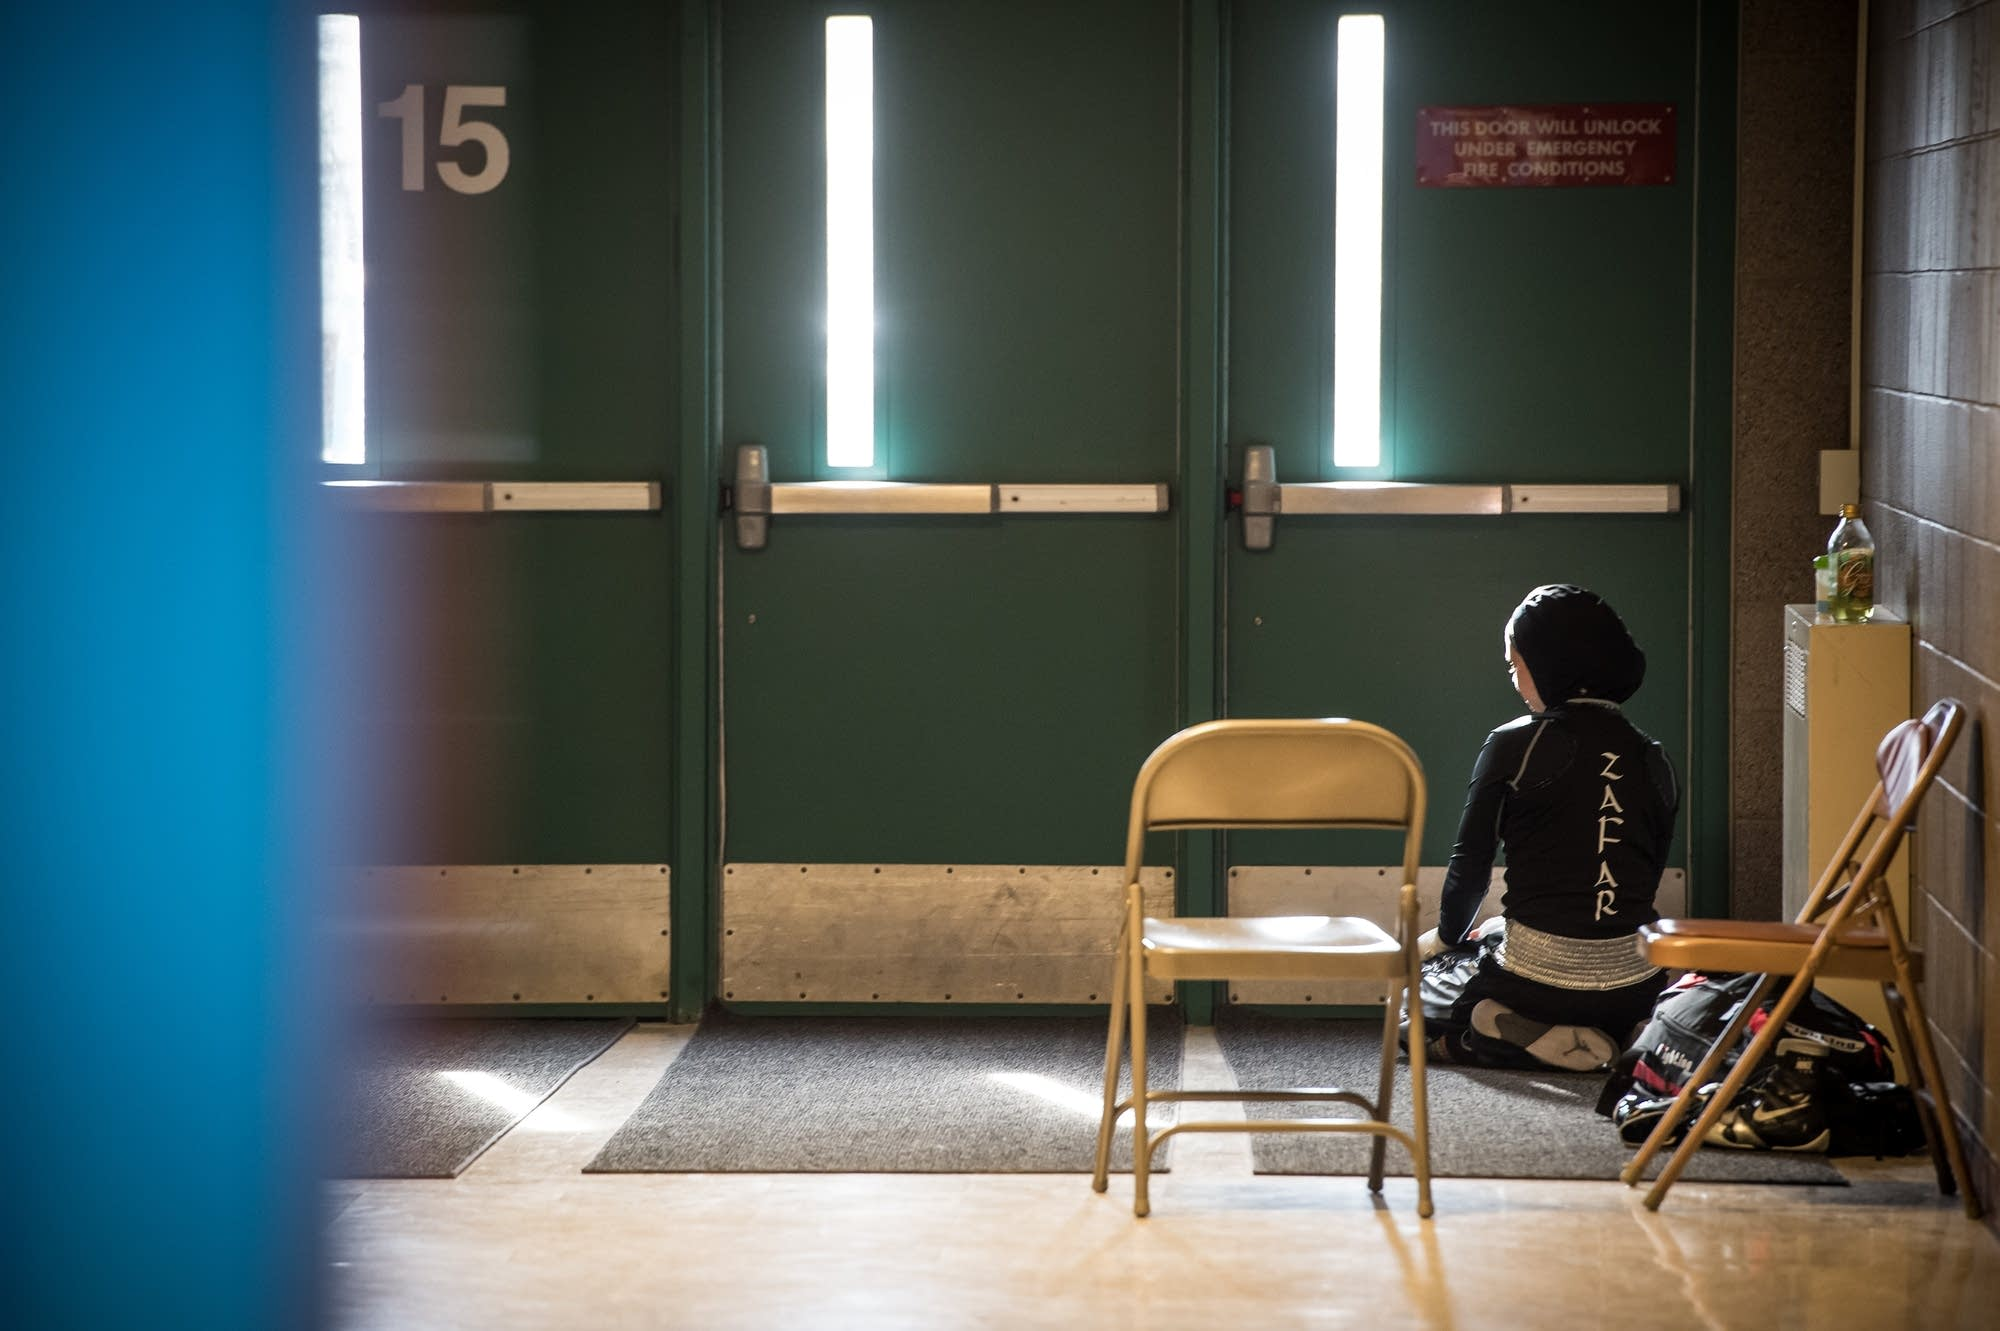 Amaiya Zafar spends time alone for afternoon prayer before the bout.